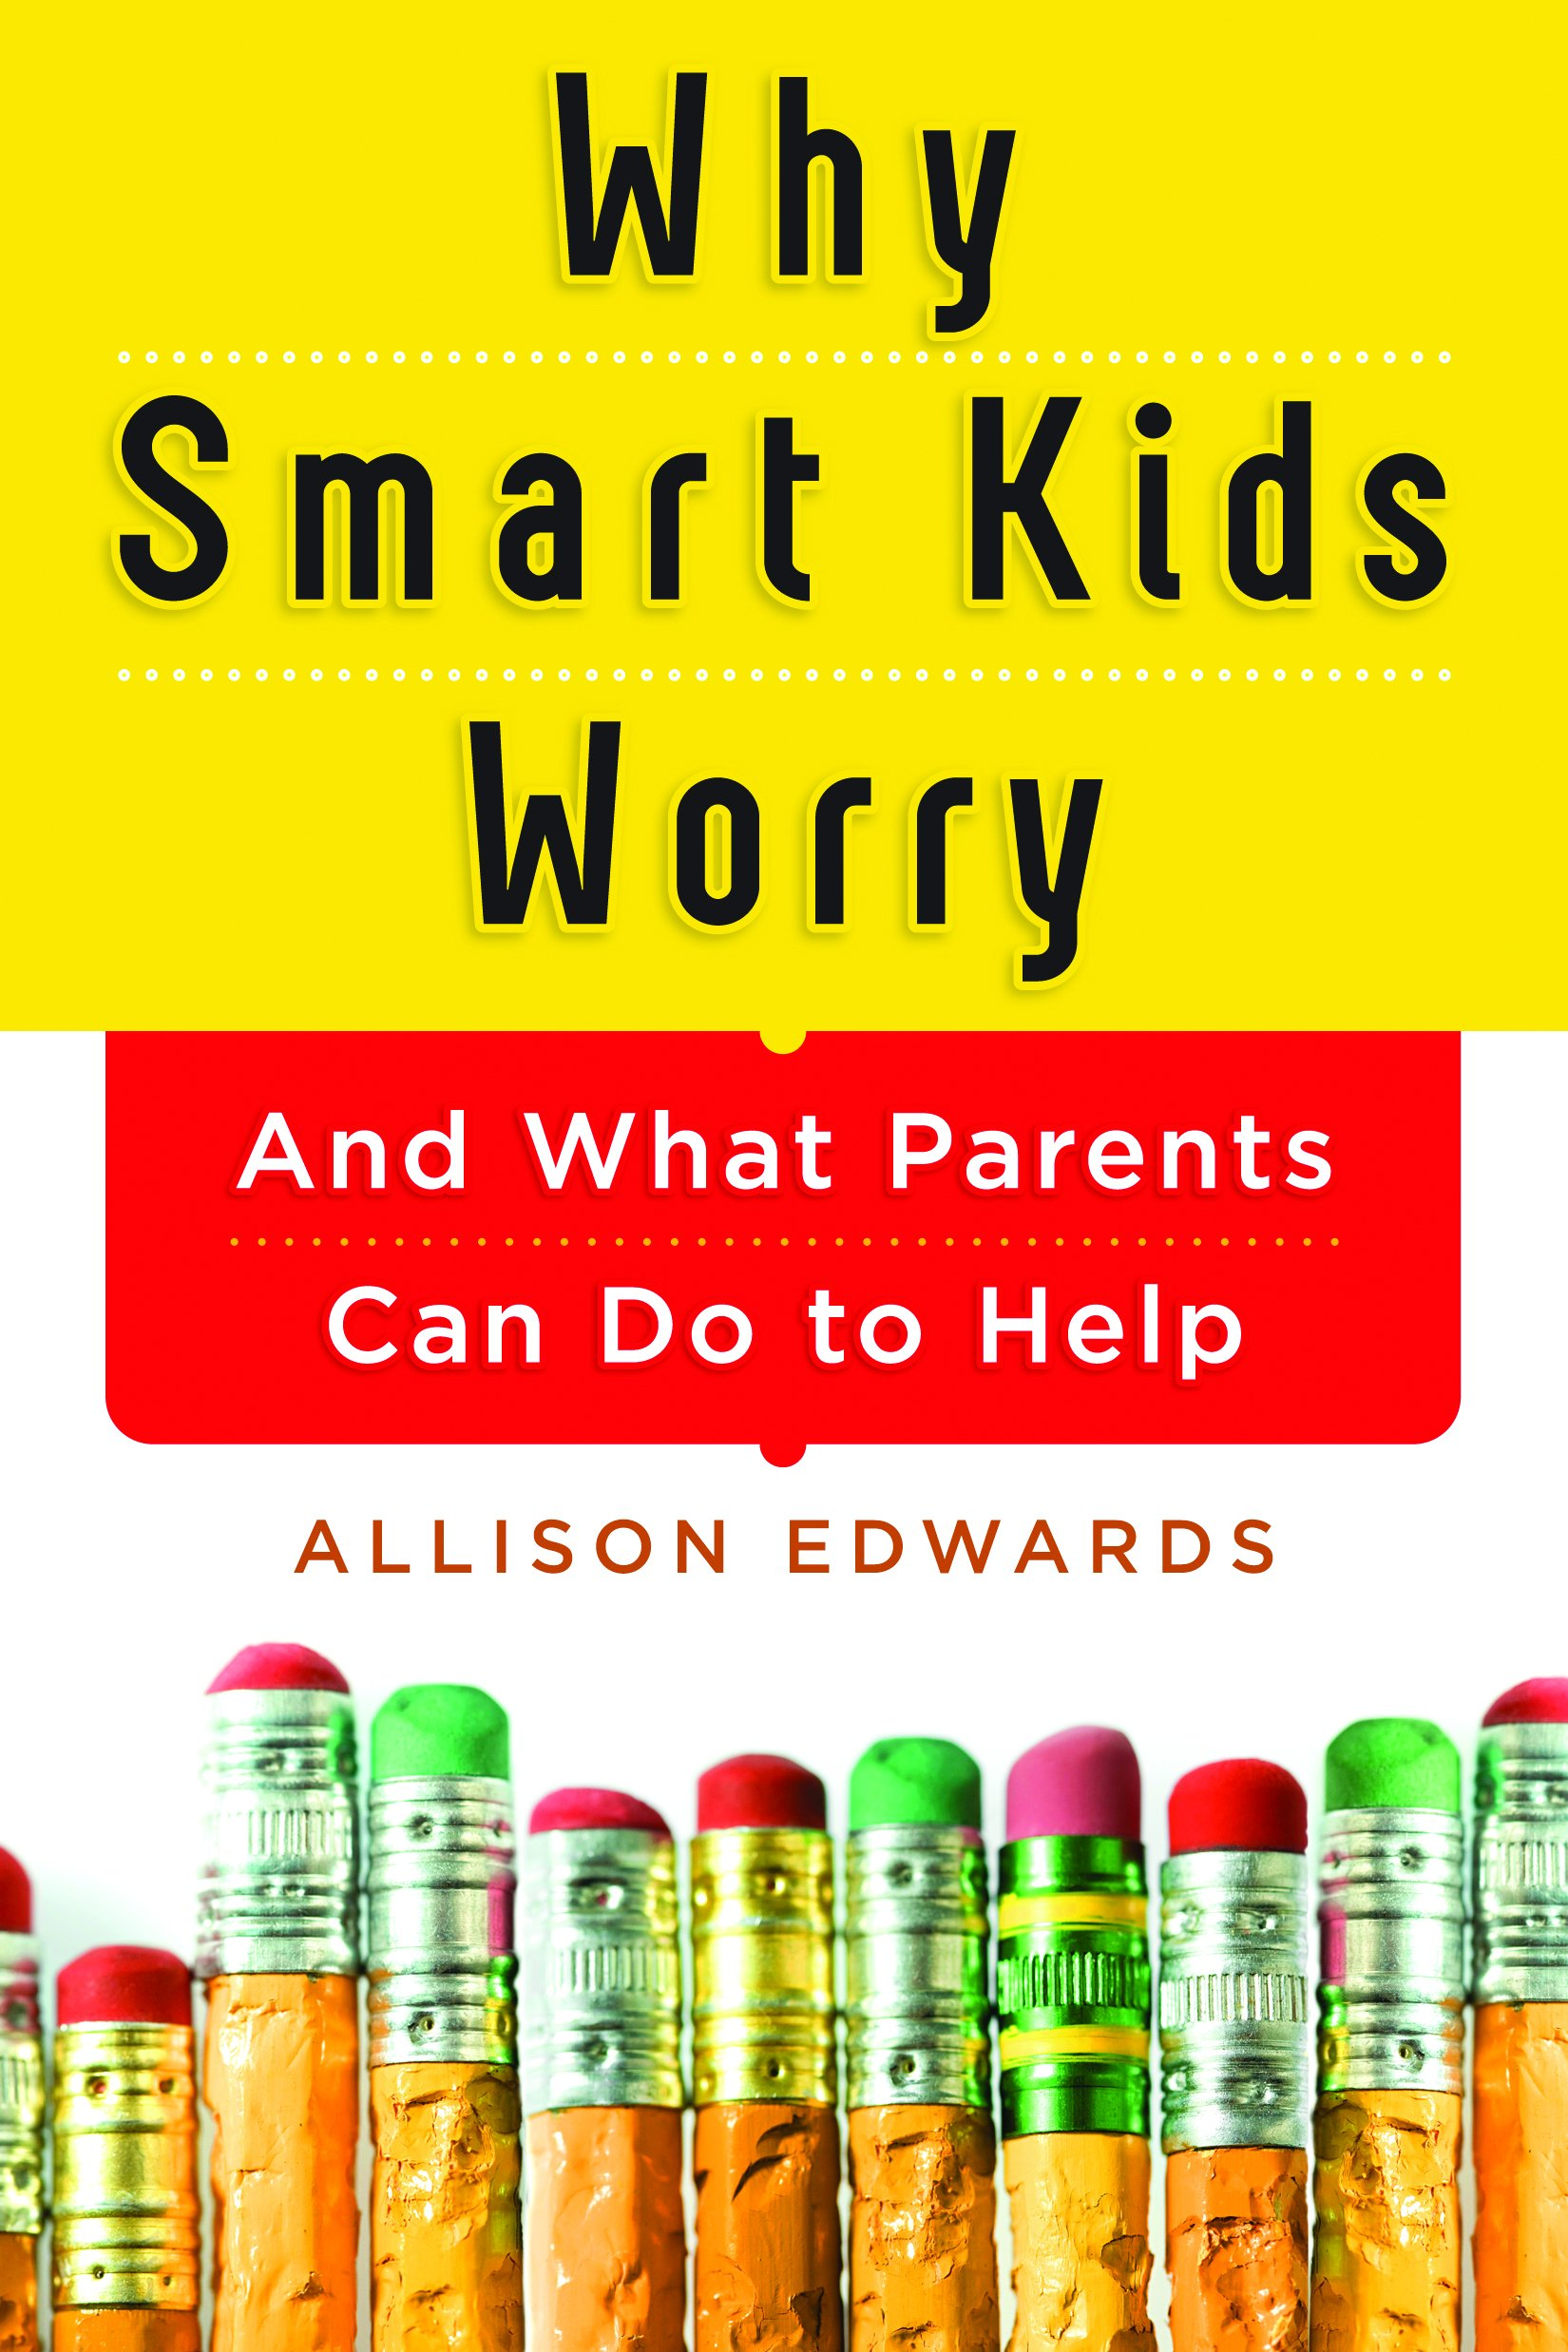 Why Smart Kids Worry: And What Parents Can Do to Help